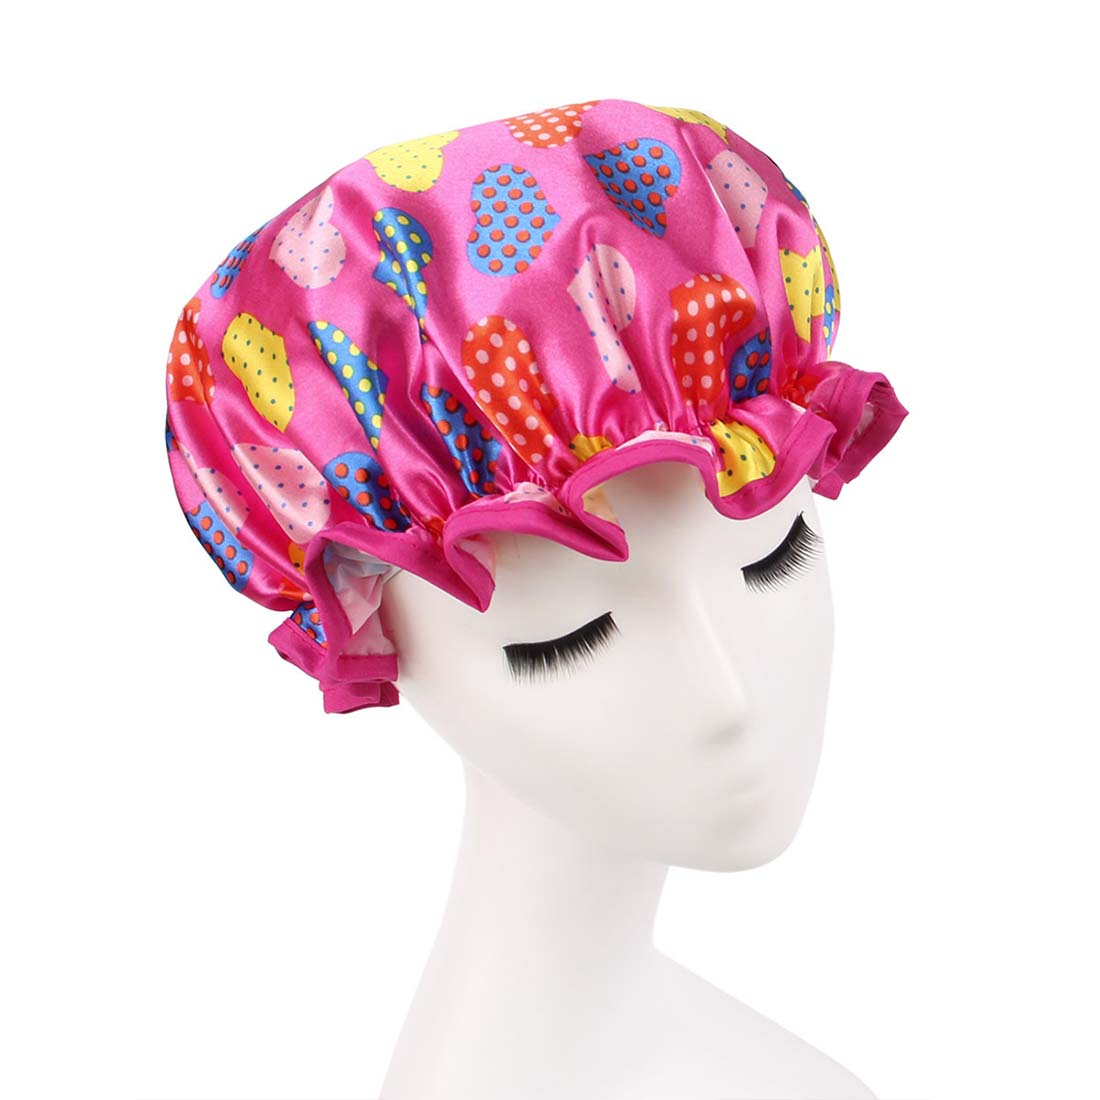 Bathroom accessories women shower cap colorful bath shower for Colorful bathroom accessories